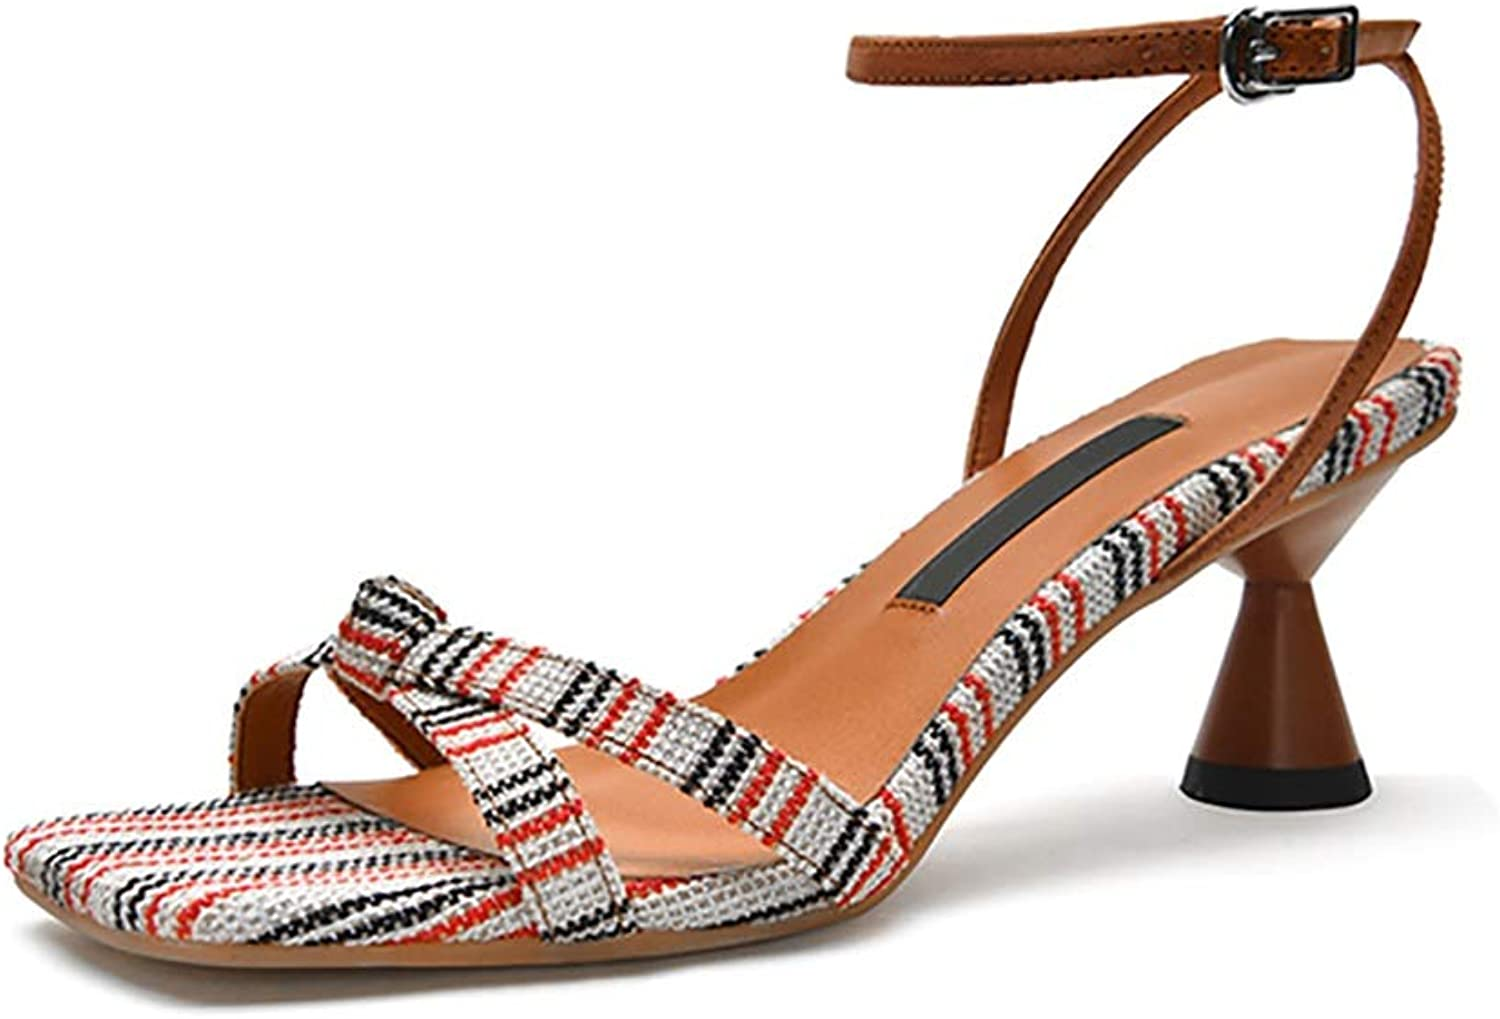 Women's Summer Striped Sandals, Square Head Hourglass Heels 6cm (color   Brown, Size   36)